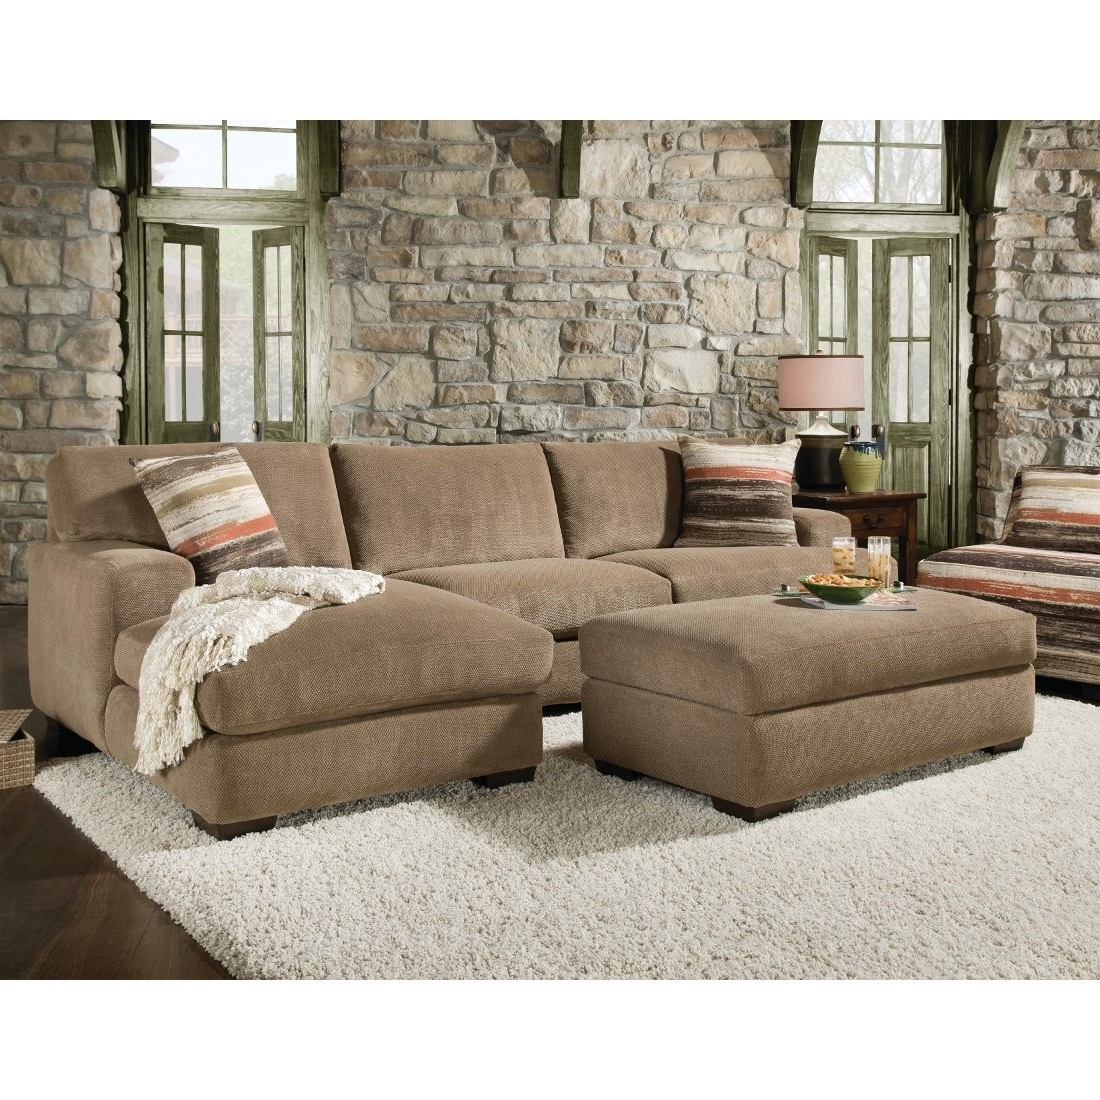 Sectionals With Chaise Lounge Pertaining To Fashionable Beautiful Sectional Sofa With Chaise And Ottoman Pictures (View 11 of 15)